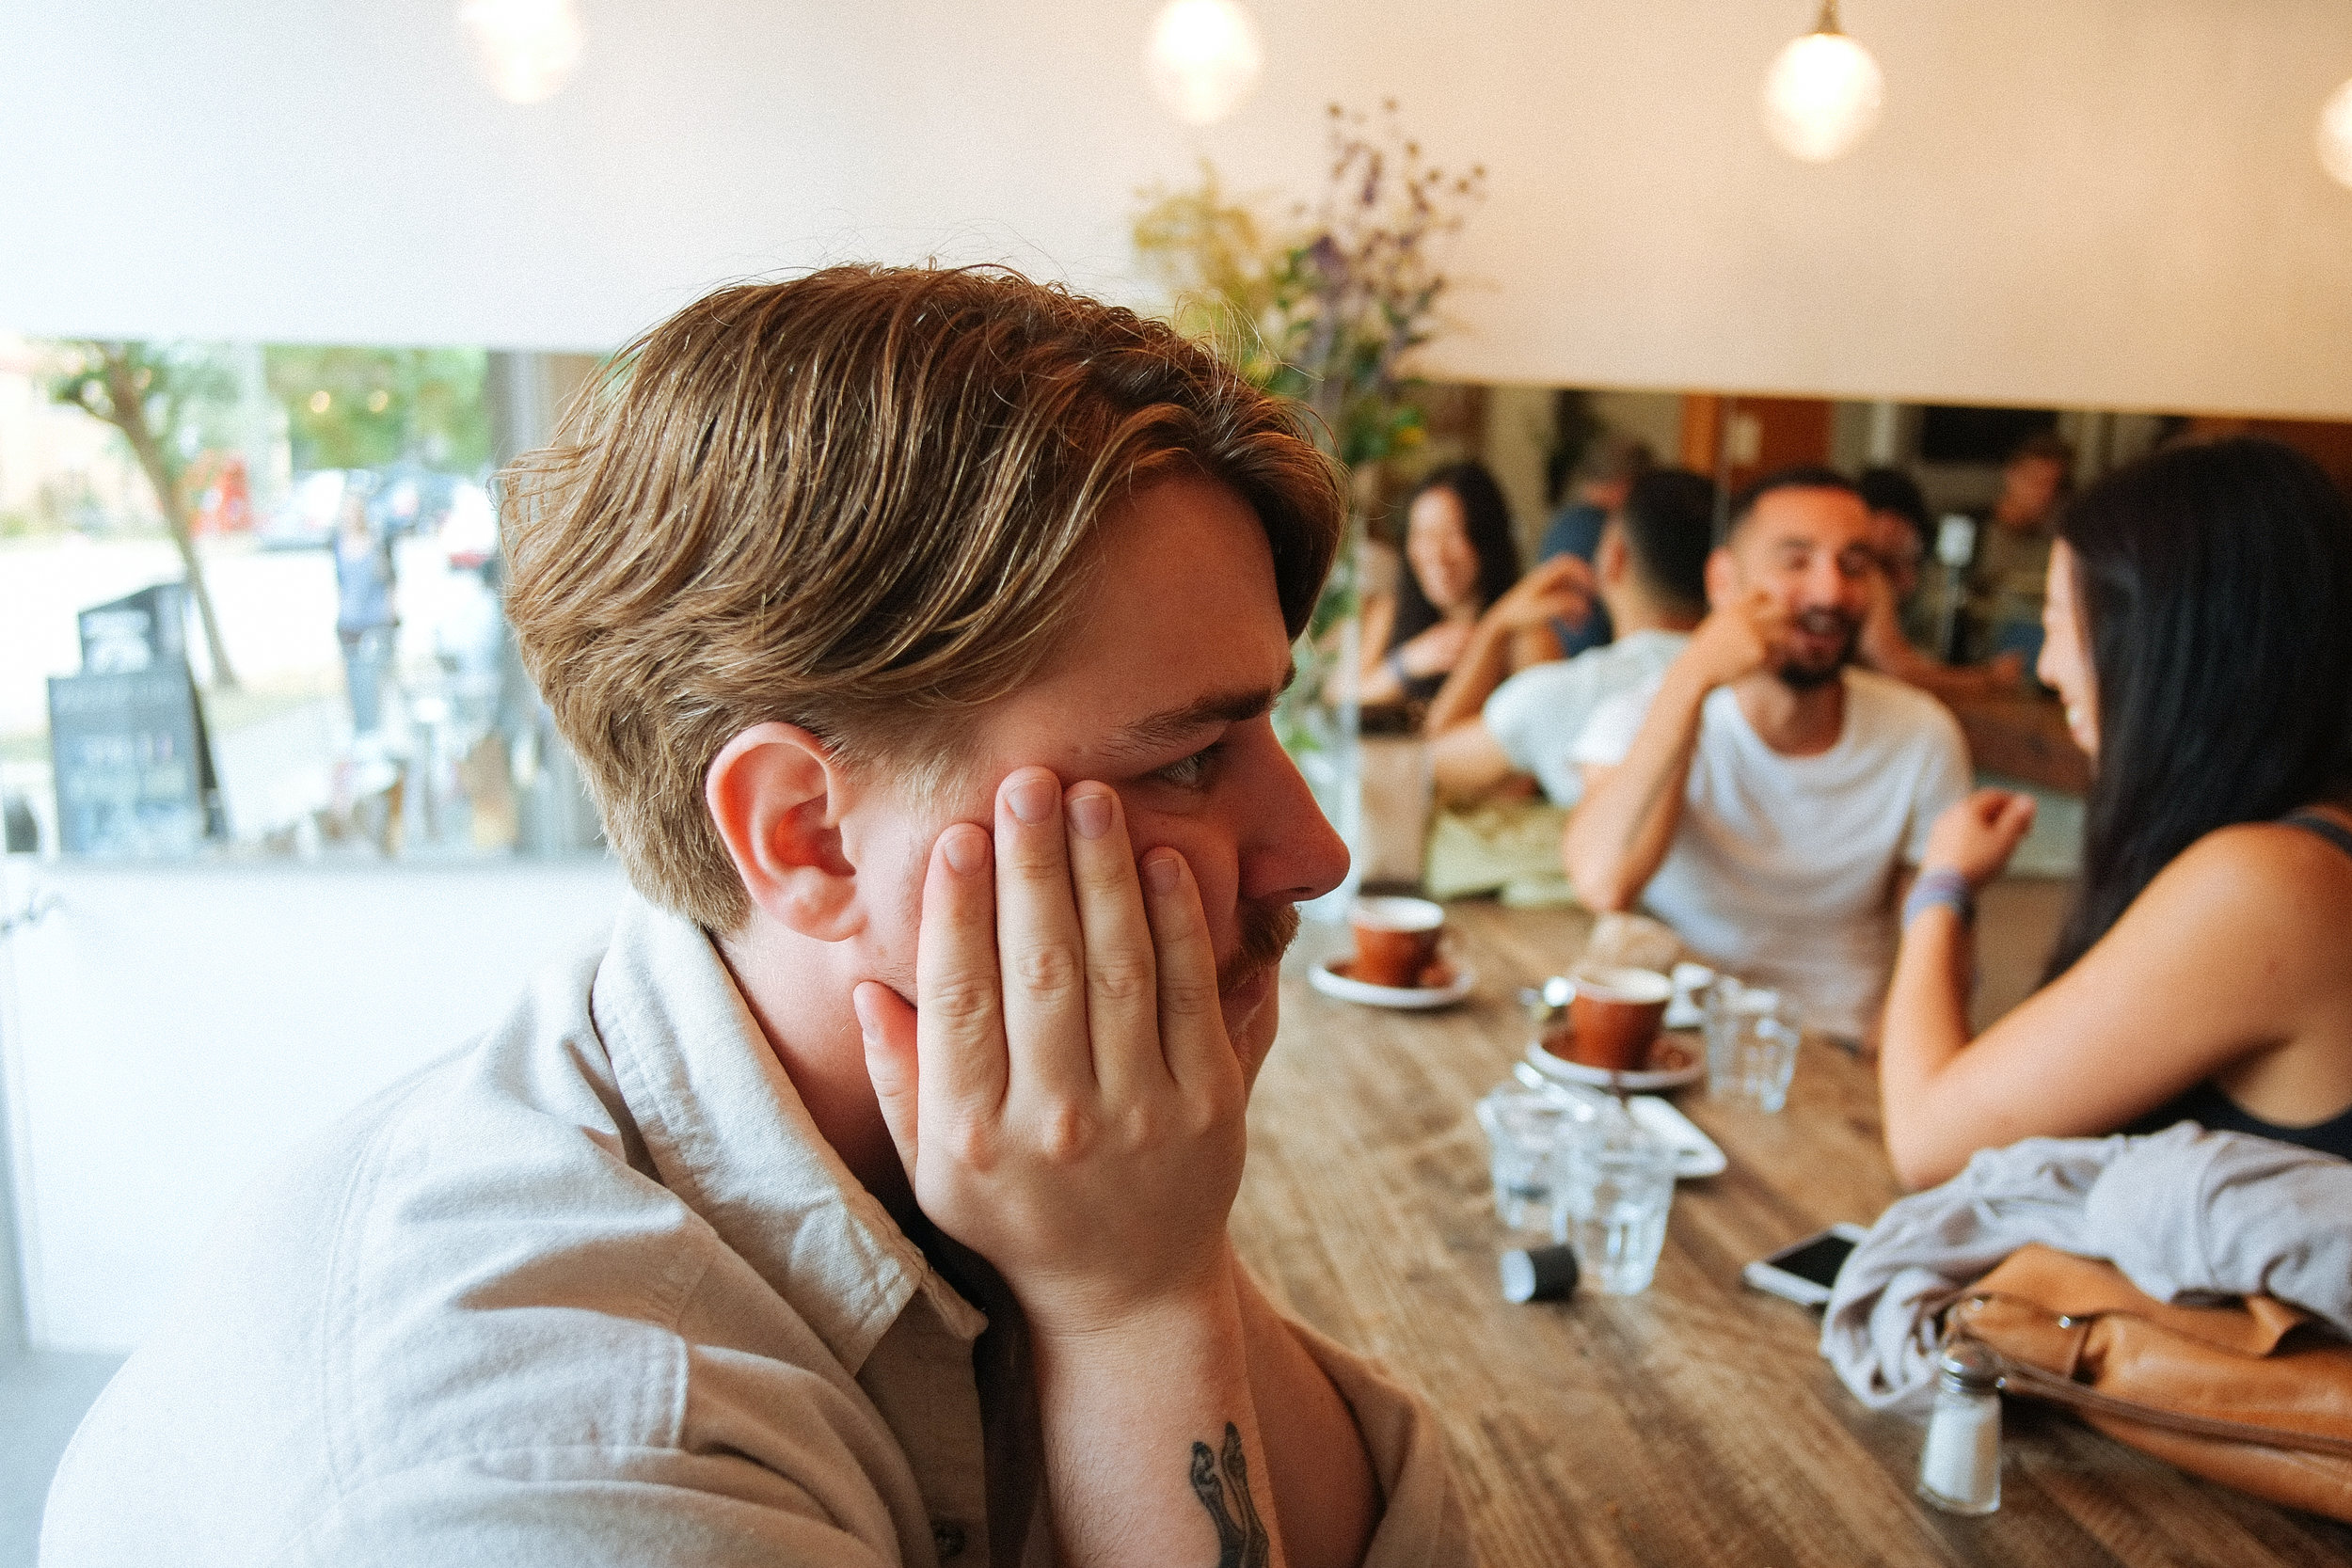 Greenhorn Cafe (Part II) - 2018-08-18: A very pensive Branton ponders over what record he will buy later in the day. A hard decision, but a very important one that was figured out throughout the rest of the day.